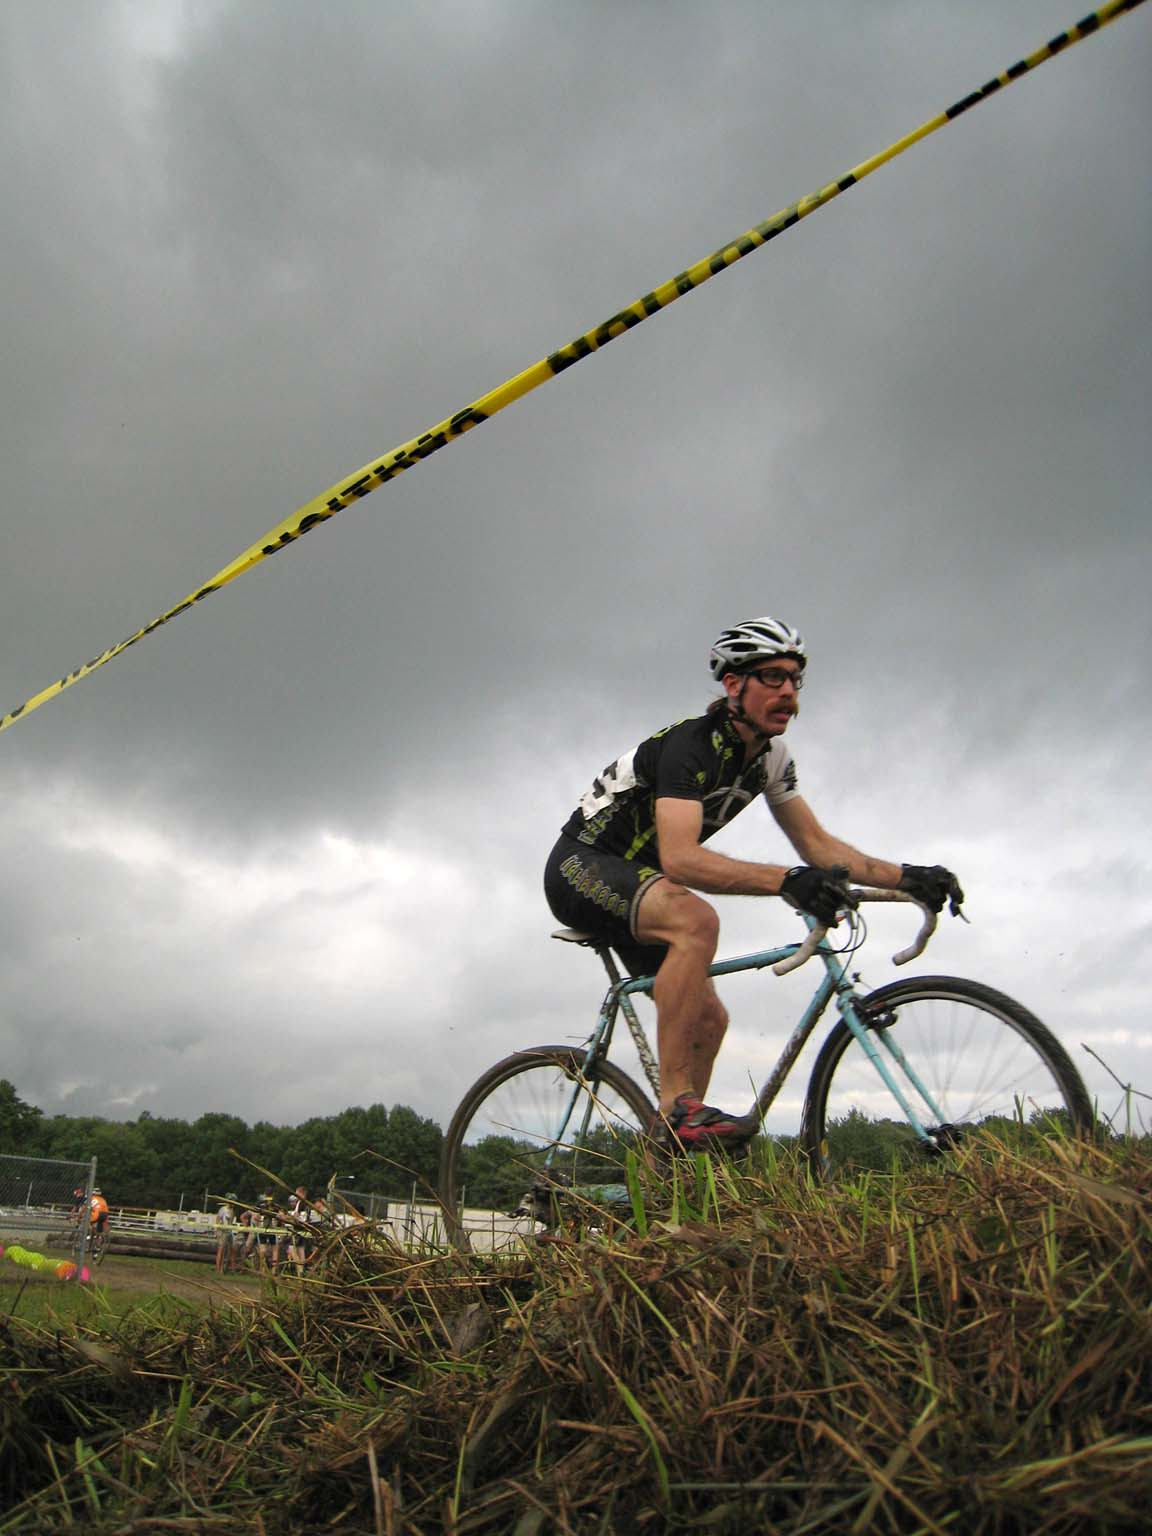 Ominous skies provided true 'cross conditions